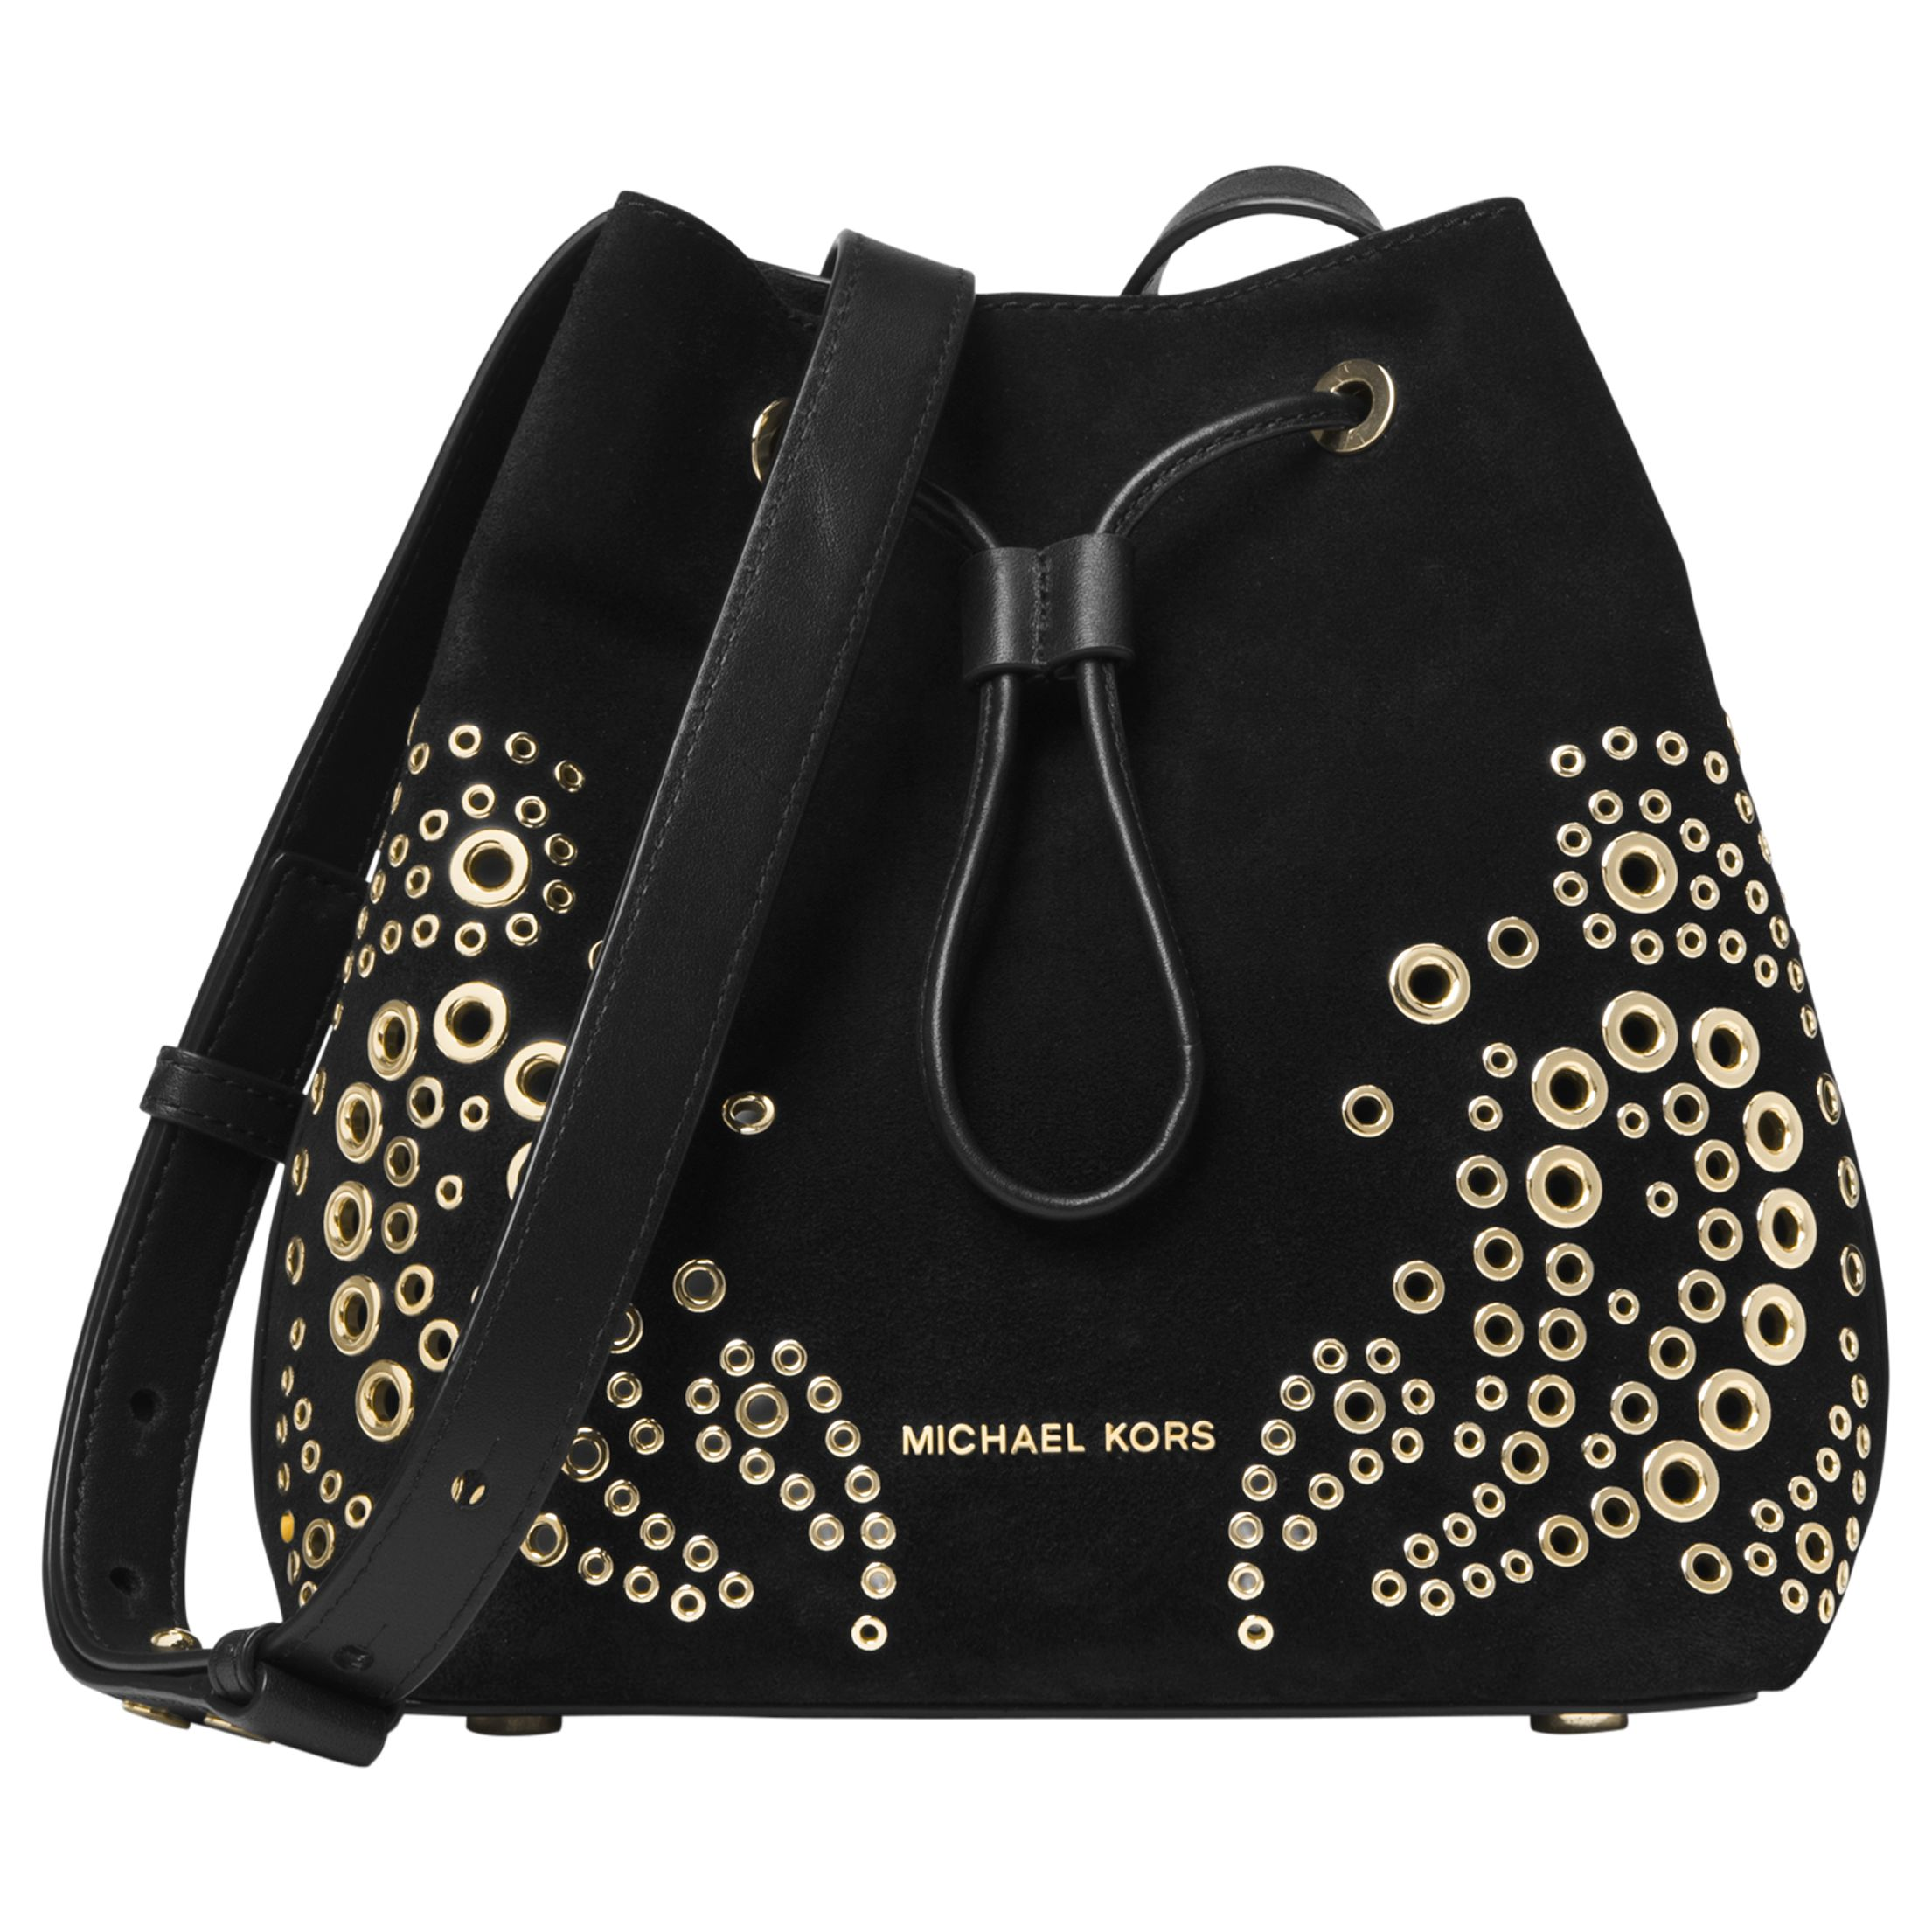 f3e799e8a22a MICHAEL Michael Kors Cary Small Eyelet Leather Bucket Bag, Black at John  Lewis & Partners